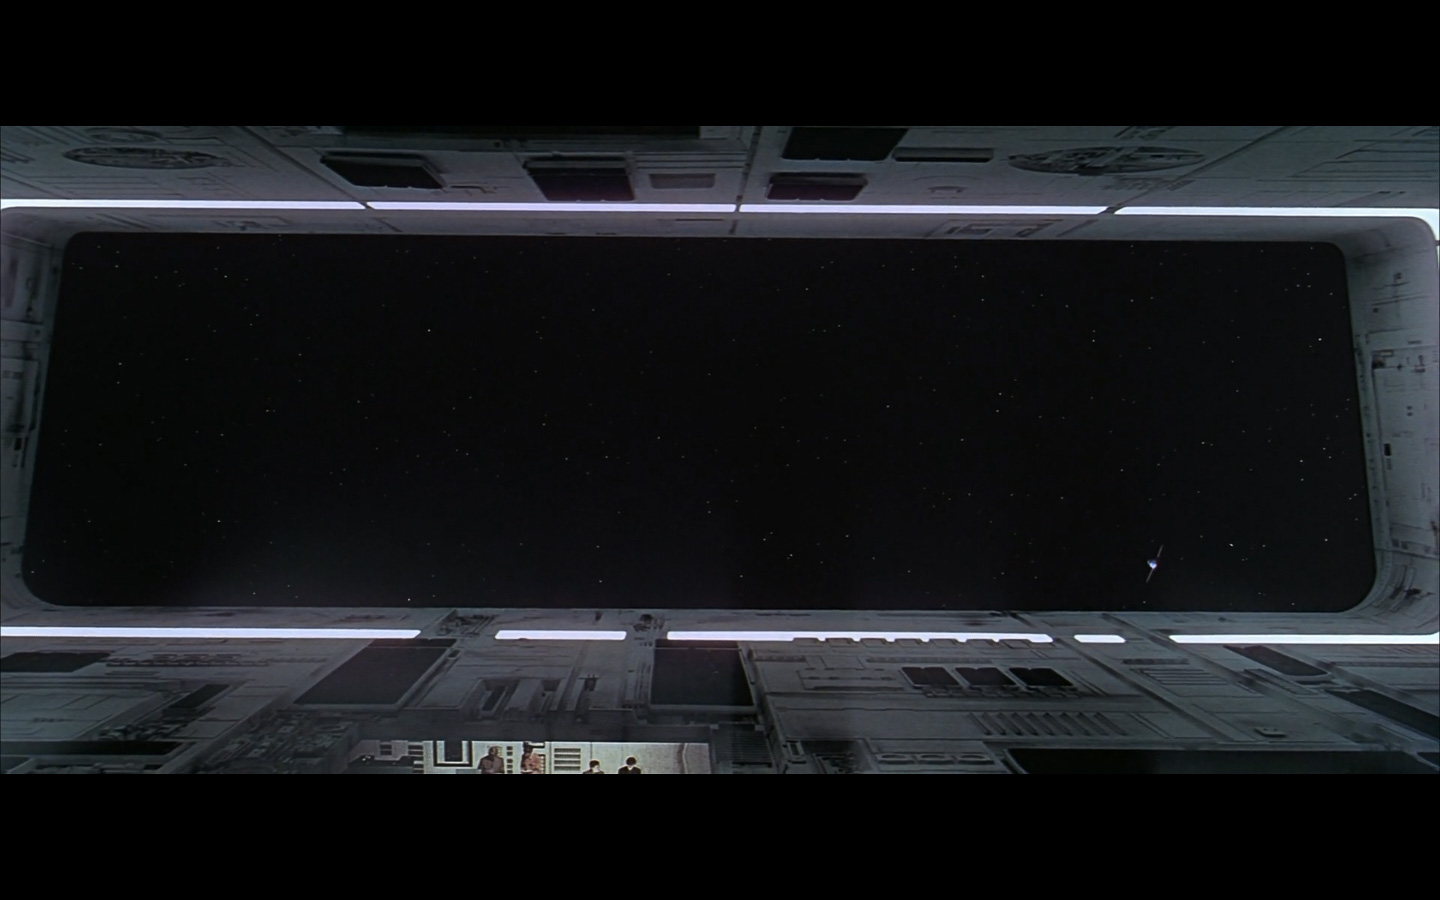 2001 Space Odyssey Cinematography-78